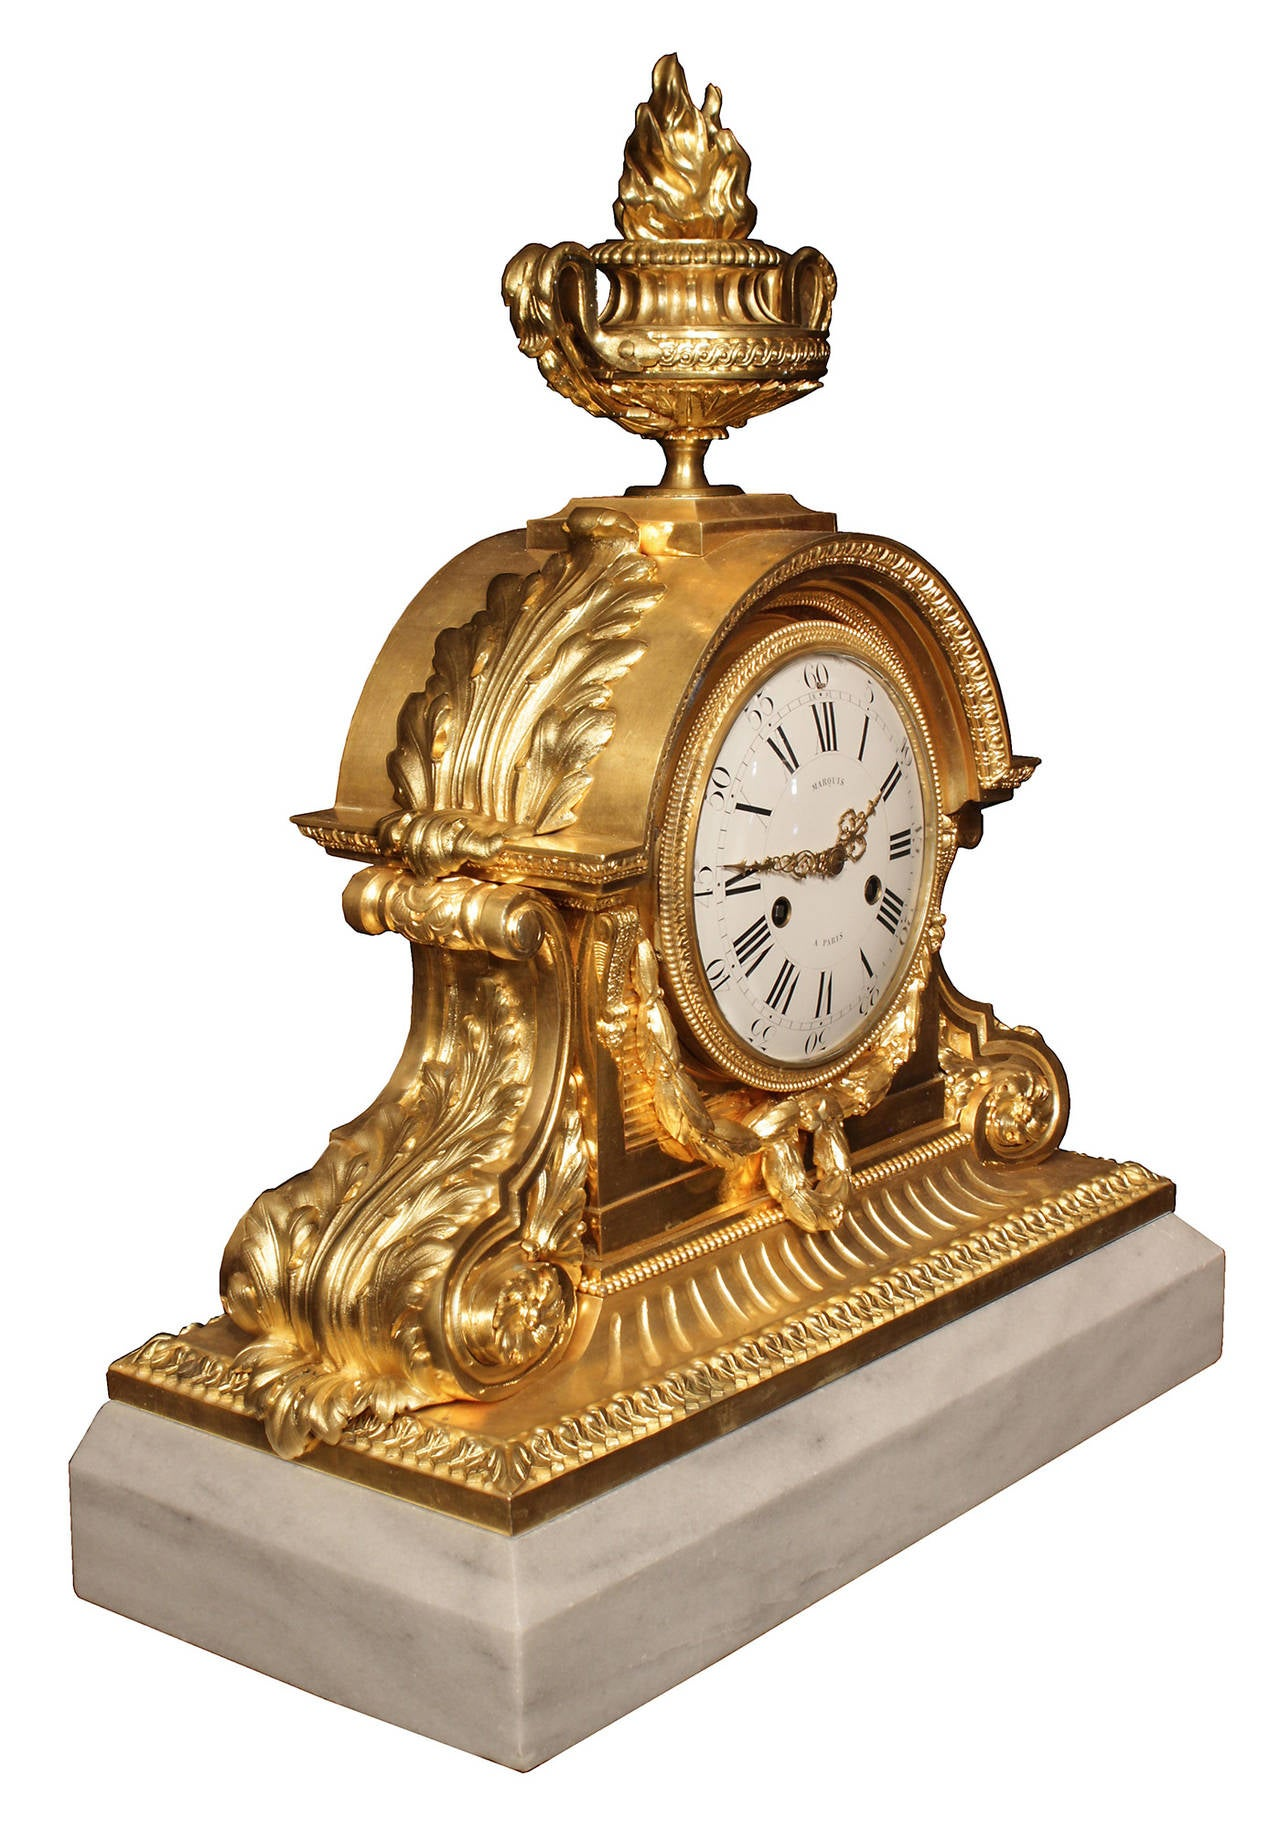 A striking and grand scale French 19th century Louis XVI st. ormolu and marble clock, signed Marquis à Paris. The mechanism is manufactured by Honoré Pons. The clock is raised on an impressive solid white Carrara marble rectangular base with a cut